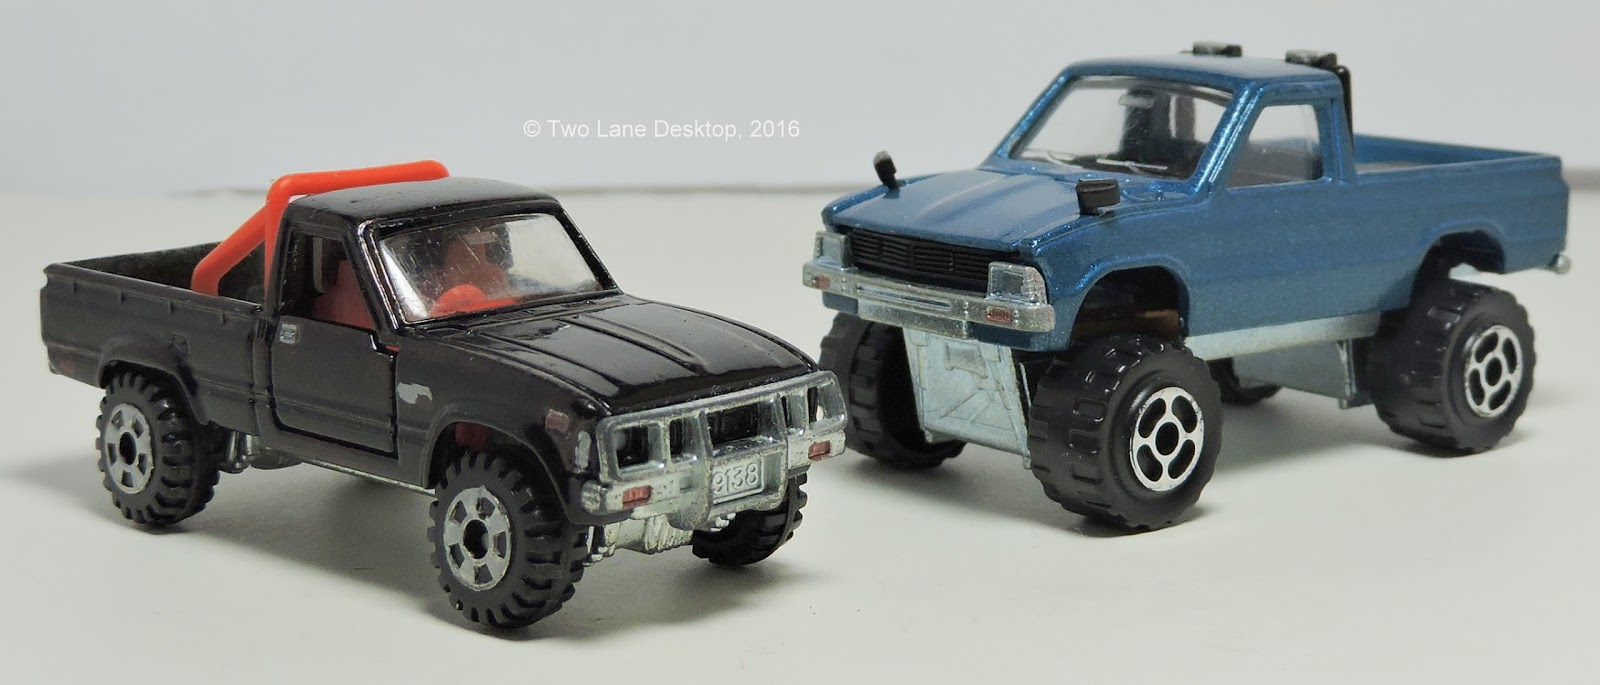 Majorette And Tomica 1980 Toyota Hiluxs Two Lane Desktop F150 Ford Truck Brush Guards